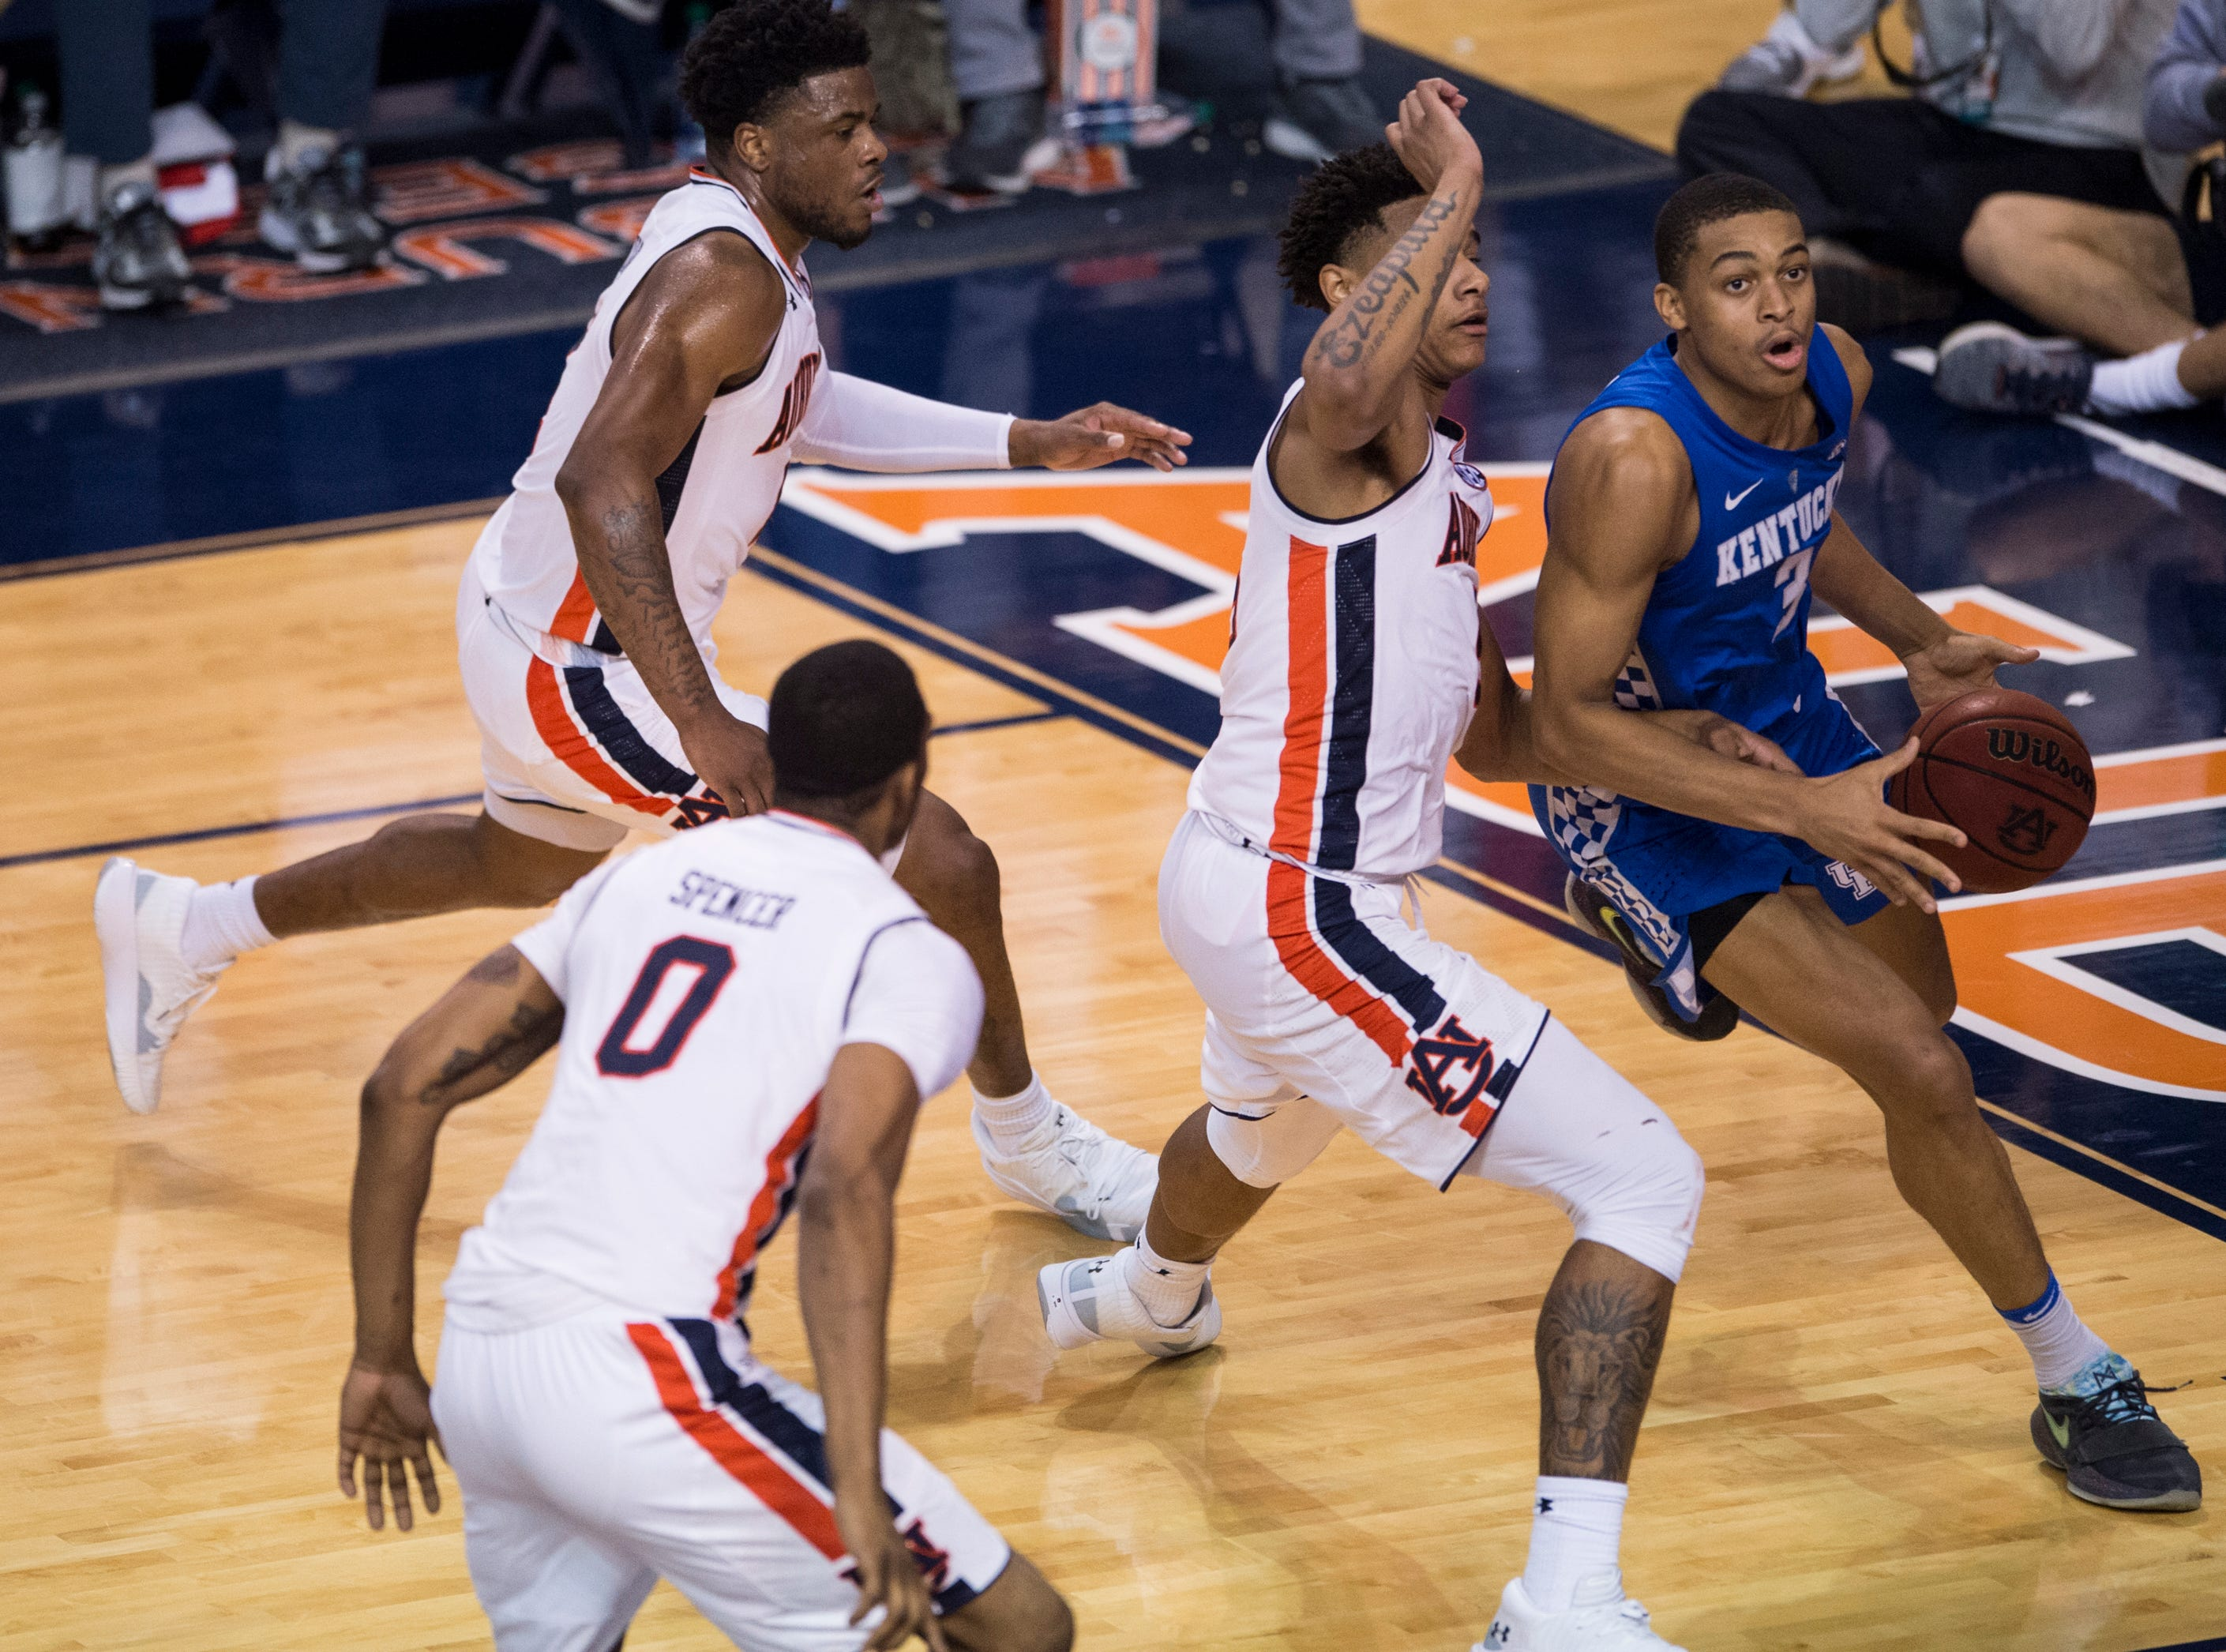 Kentucky guard Keldon Johnson (3) drives the baseline at Auburn Arena in Auburn, Ala., on Saturday, Jan. 19, 2019. Kentucky defeats Auburn 82-80.